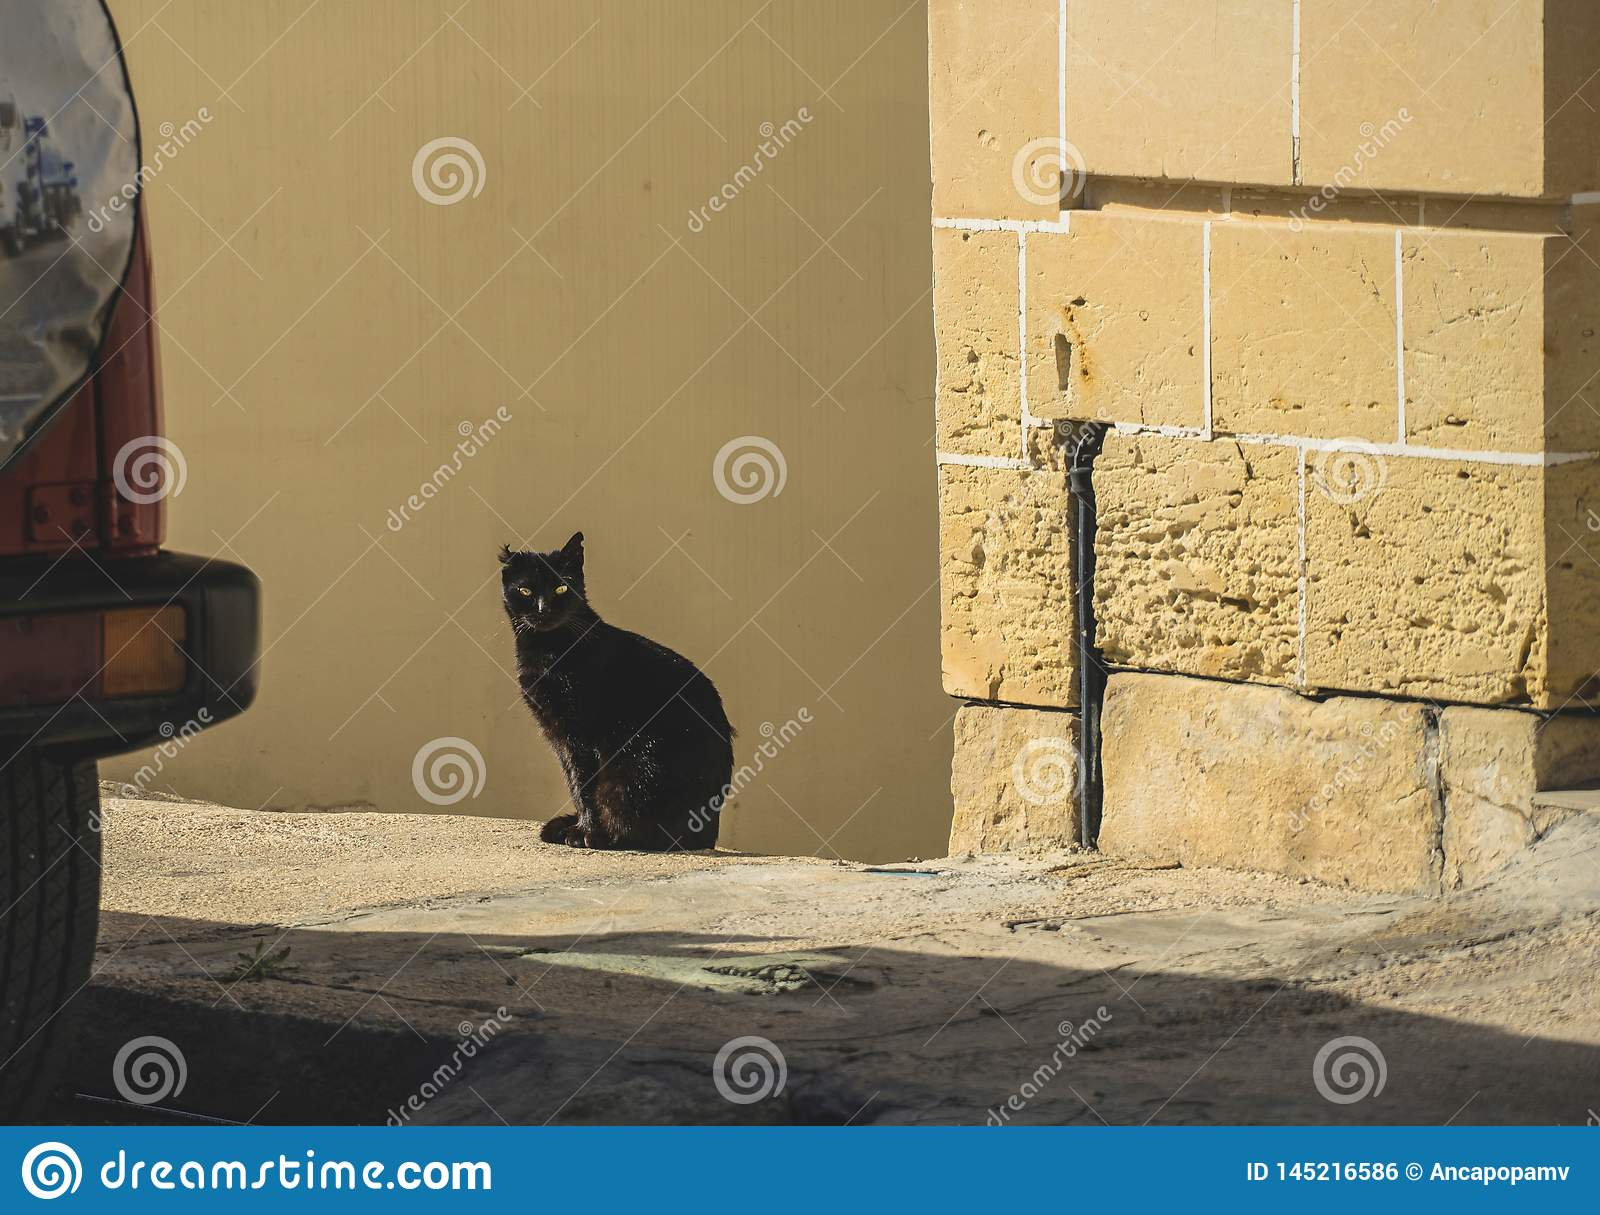 Young black cat sitting in the sun, looking at the camera, with one year cut off